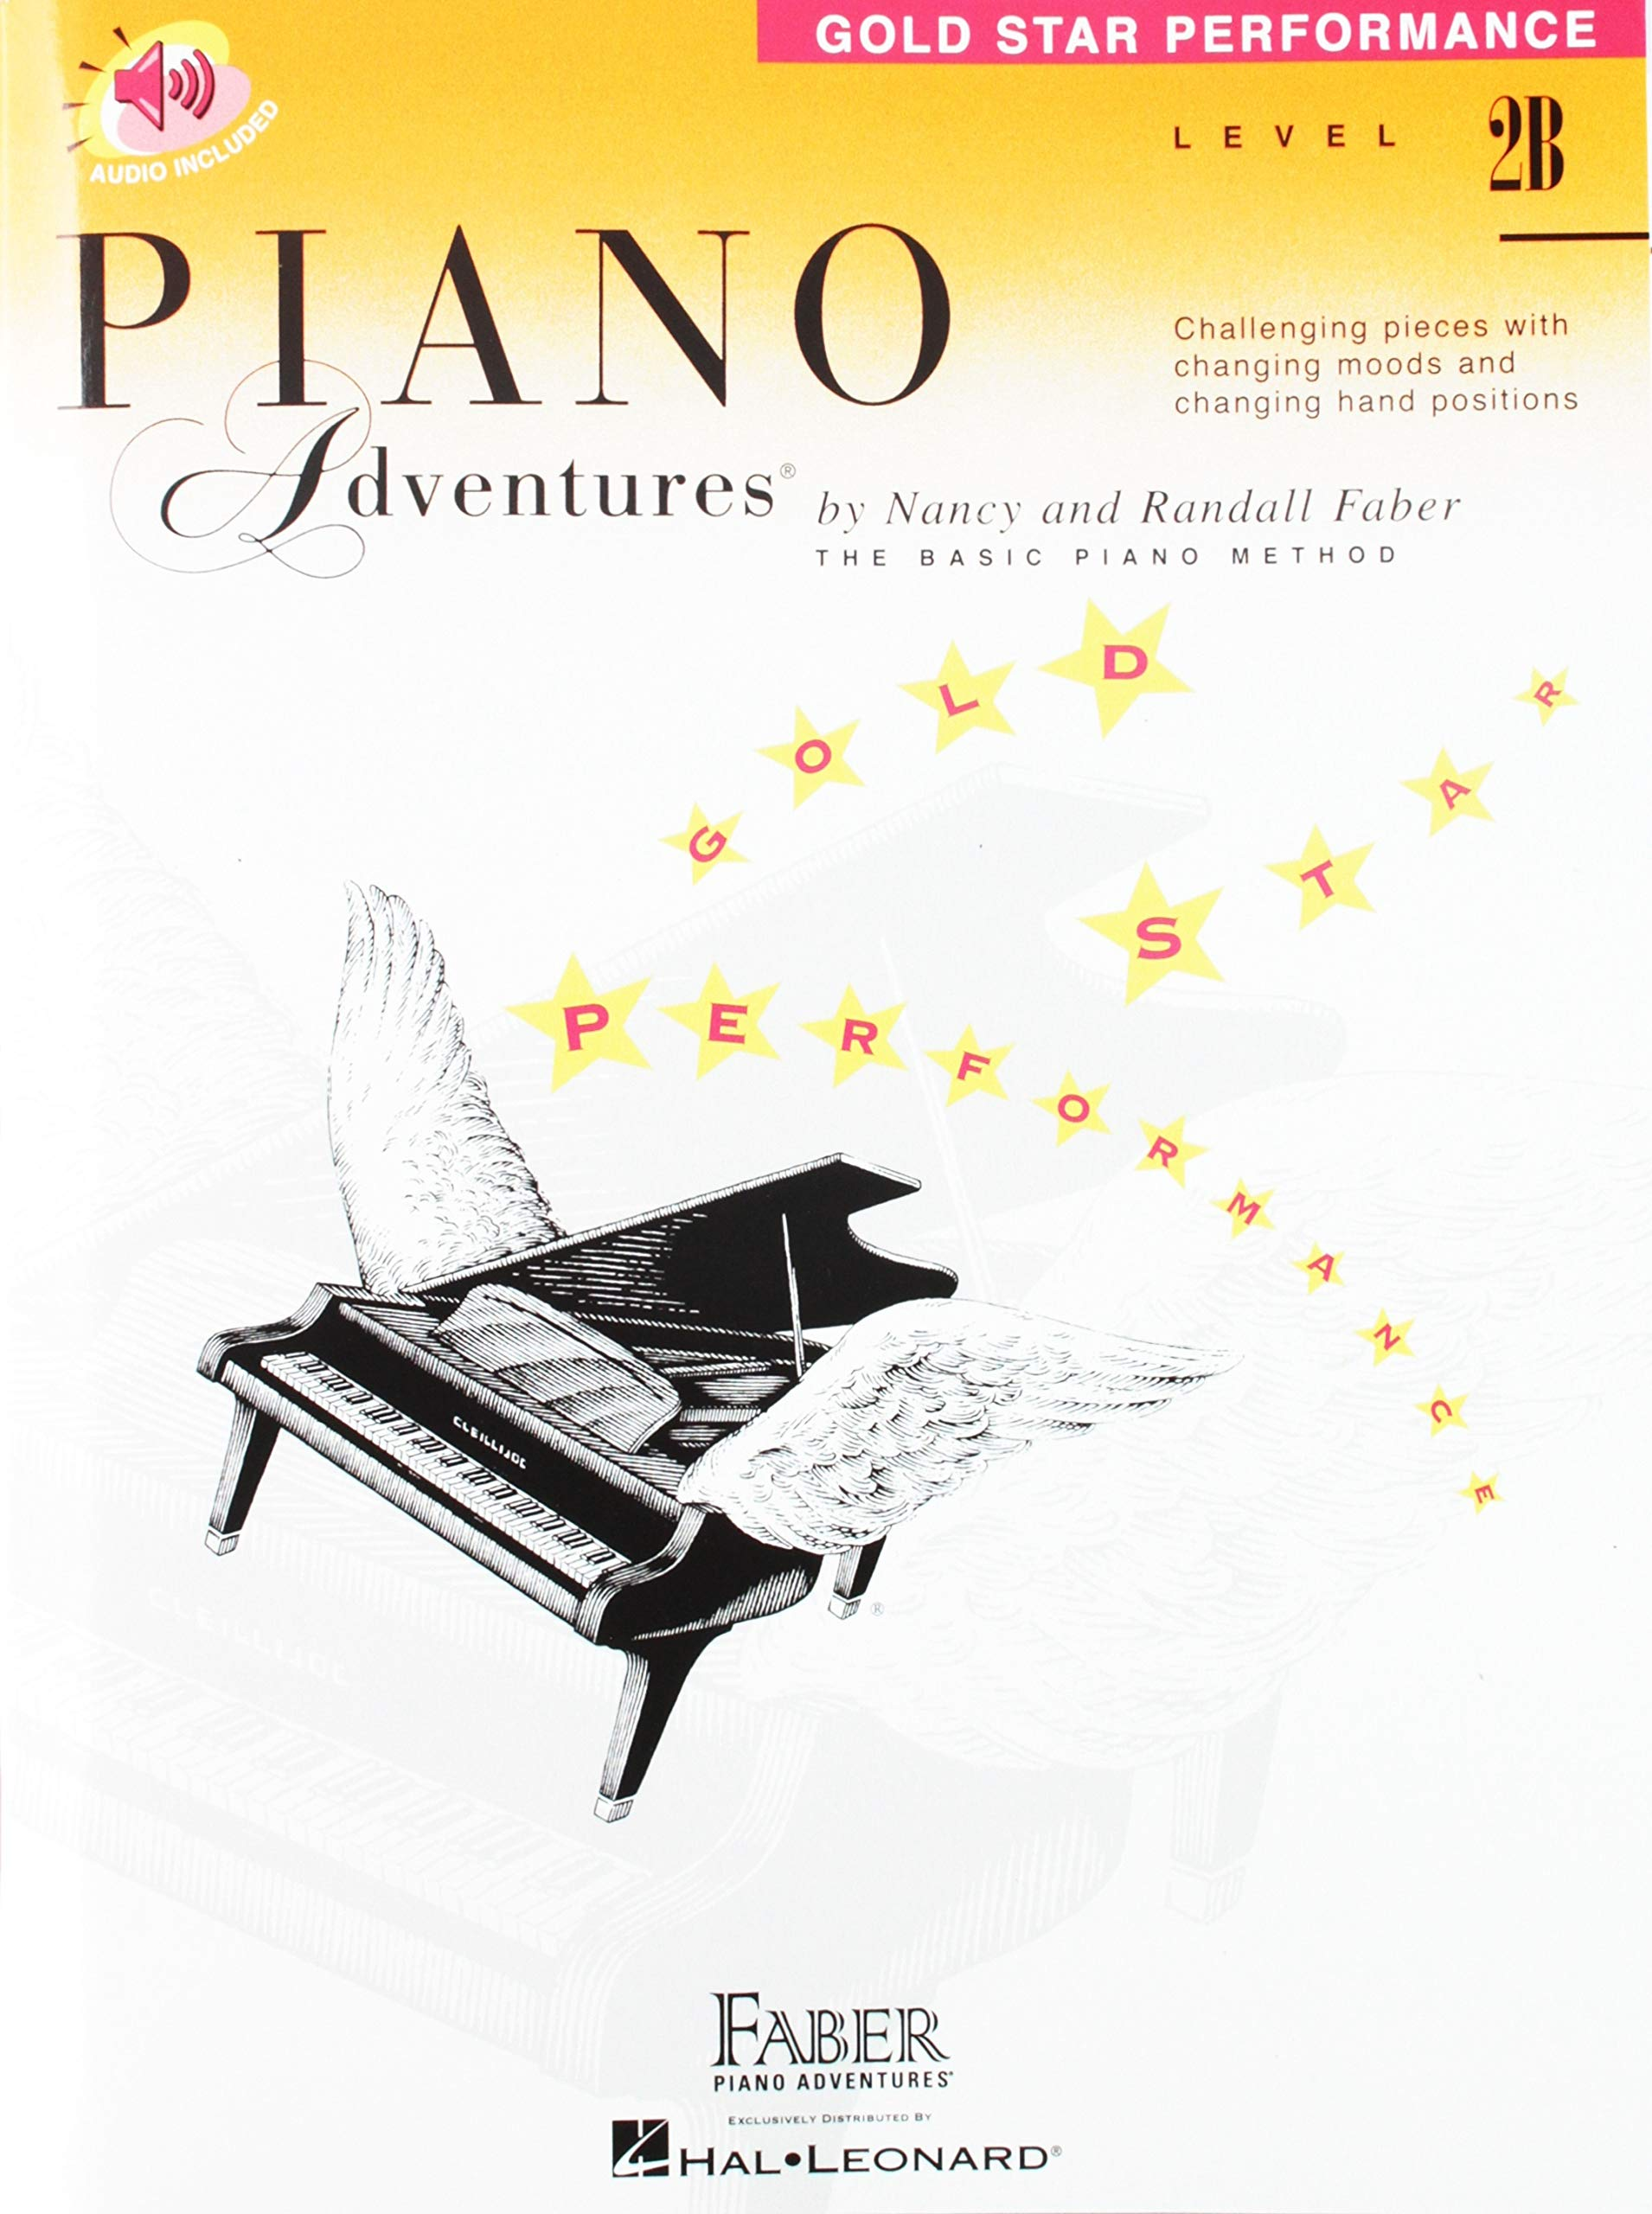 level 2b gold star performance with audio piano adventures